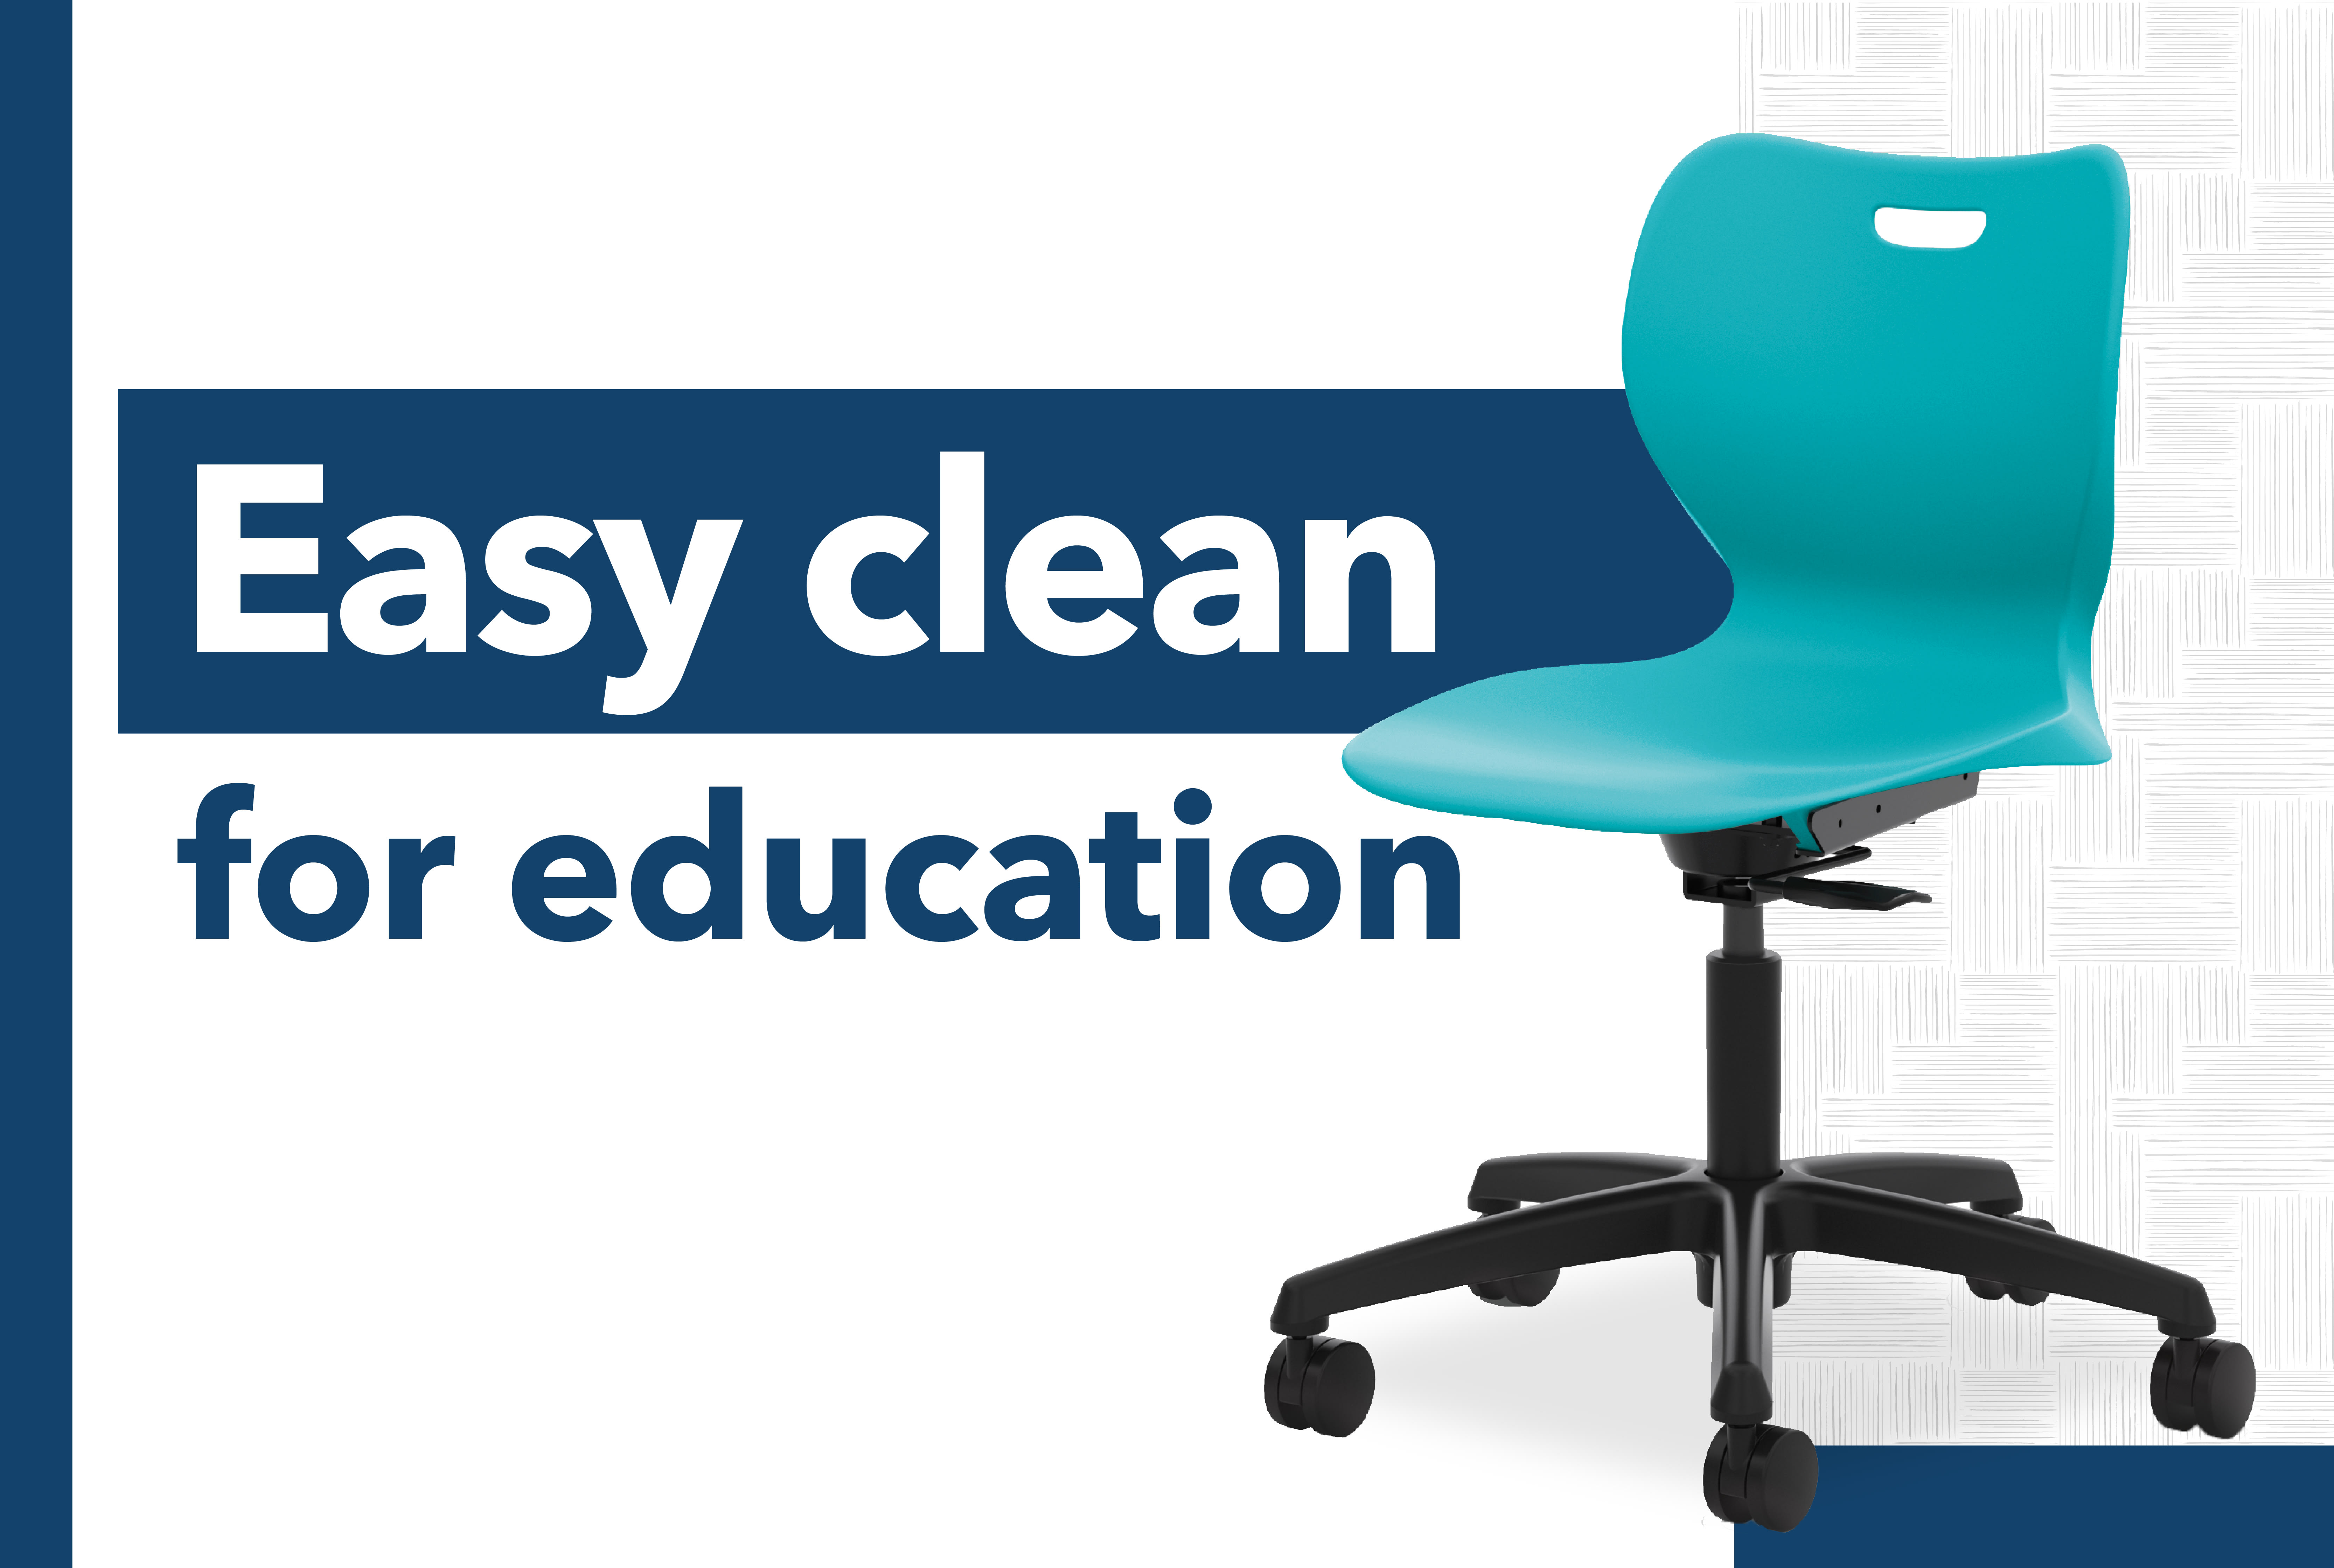 Easy clean for education